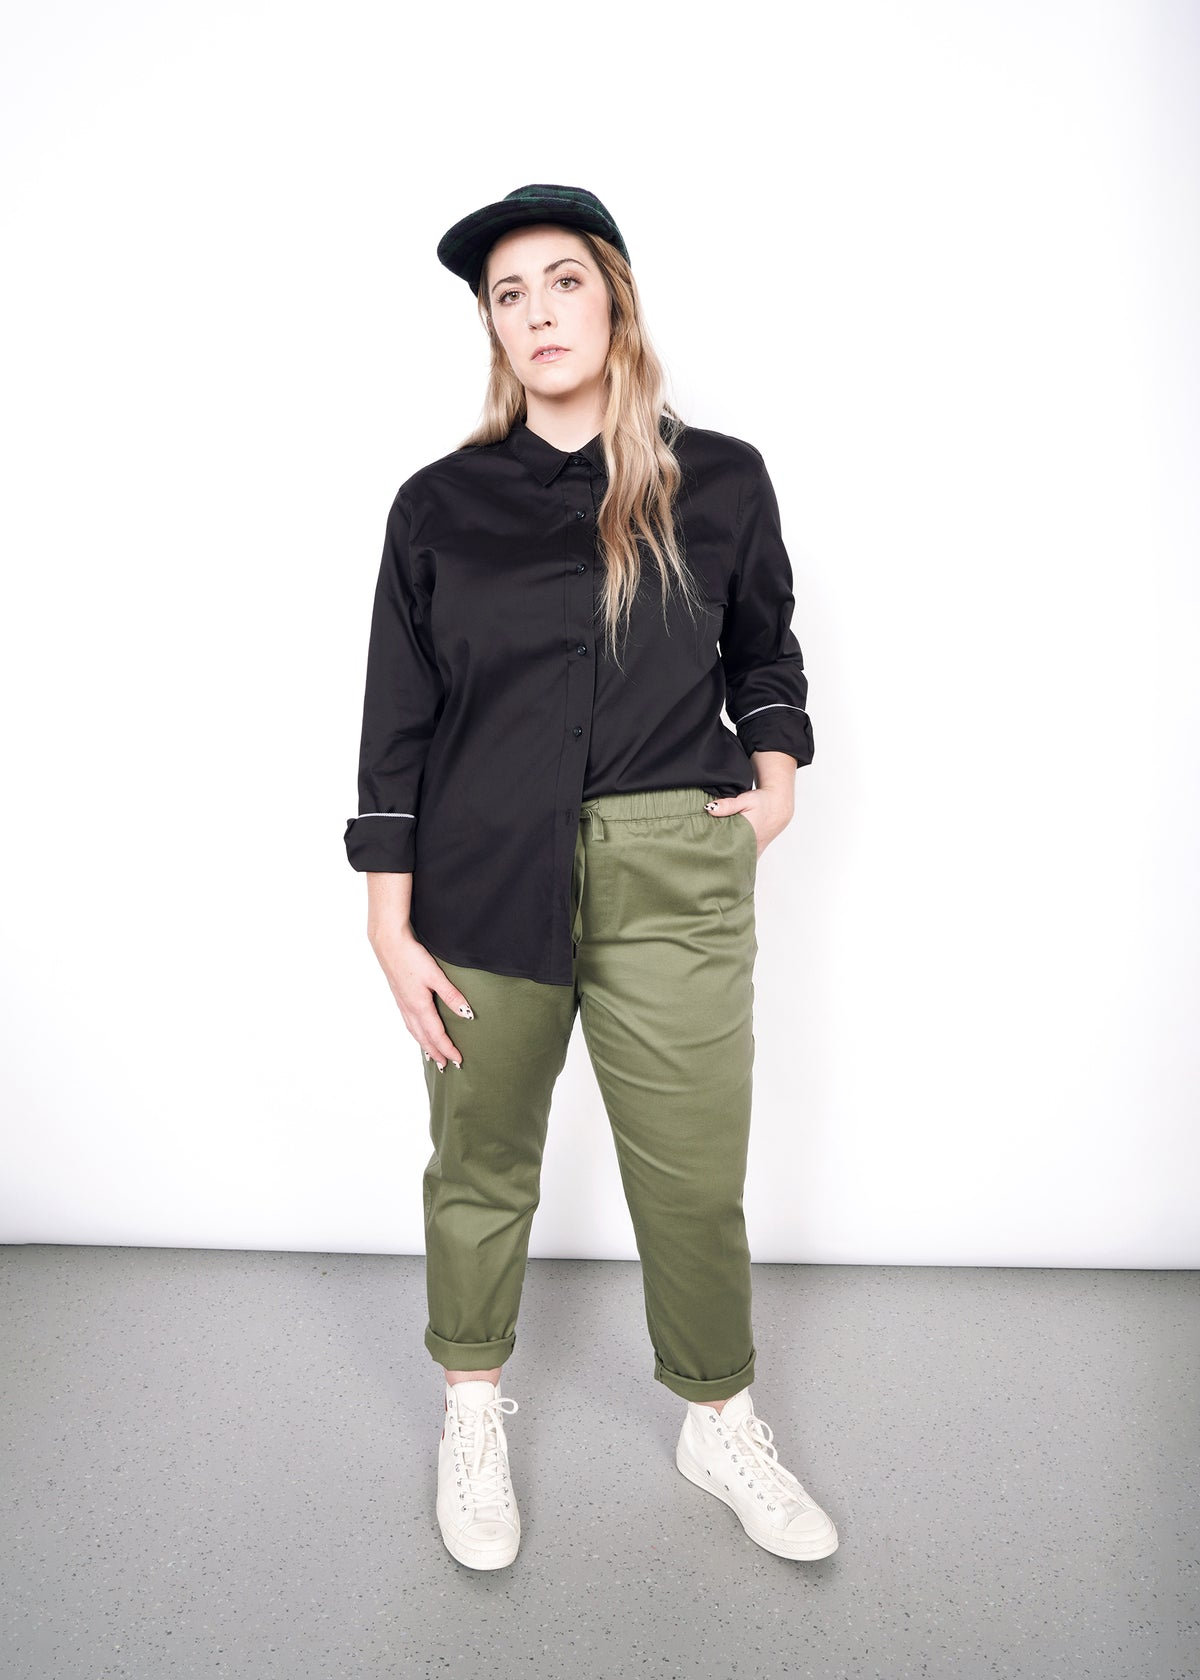 Model with long hair and hat wearing black long sleeve button up shirt and olive drawstring pants, white high top sneakers